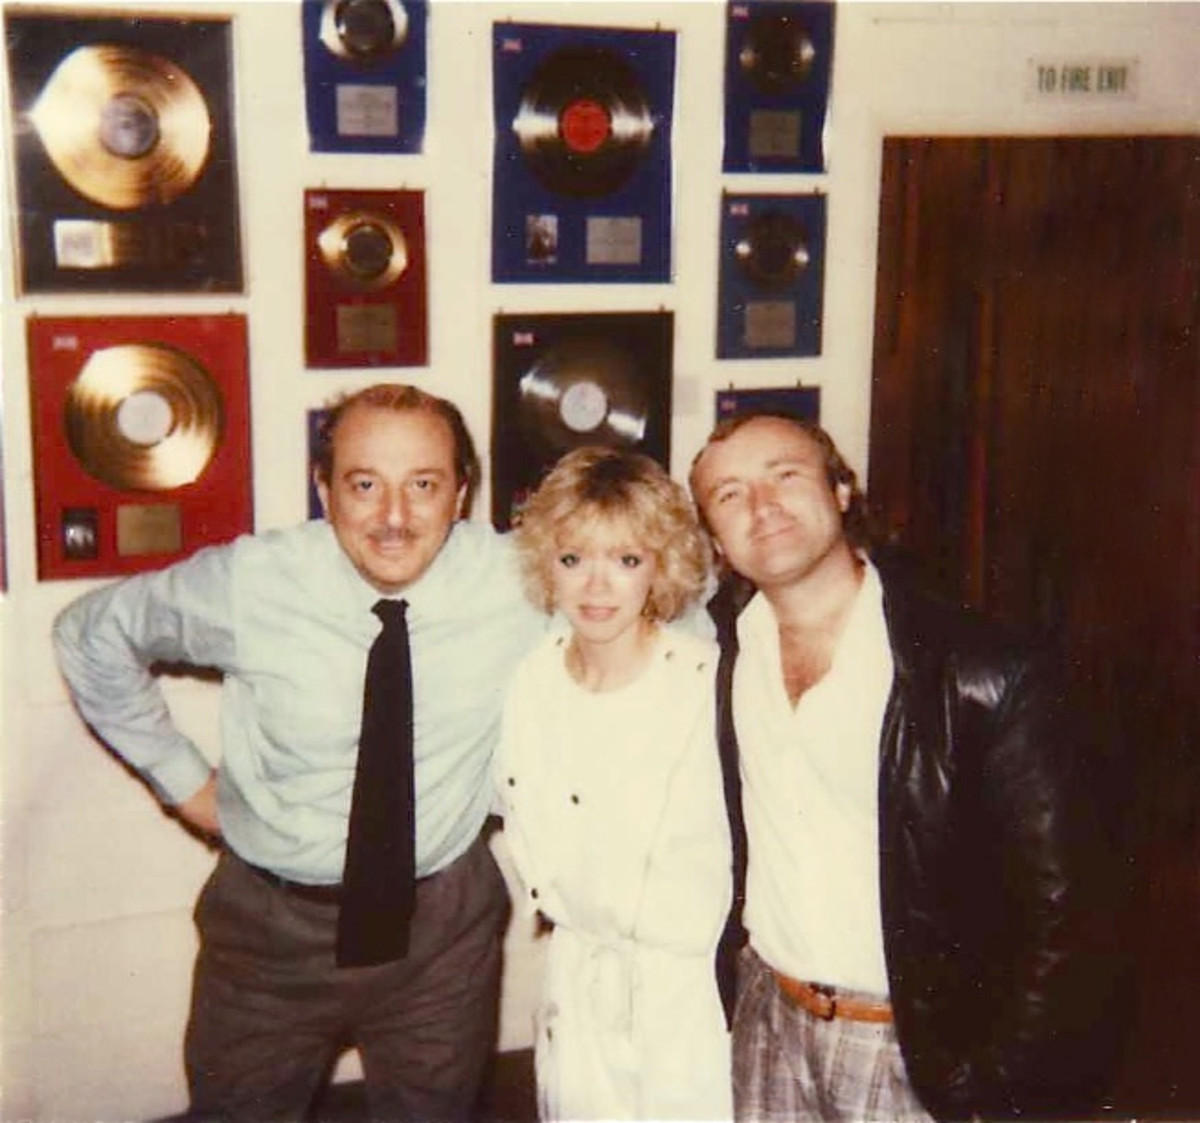 Arif Mardin, Marilyn Martin and Phil Collins. Photo courtesy of Marilyn Martin.